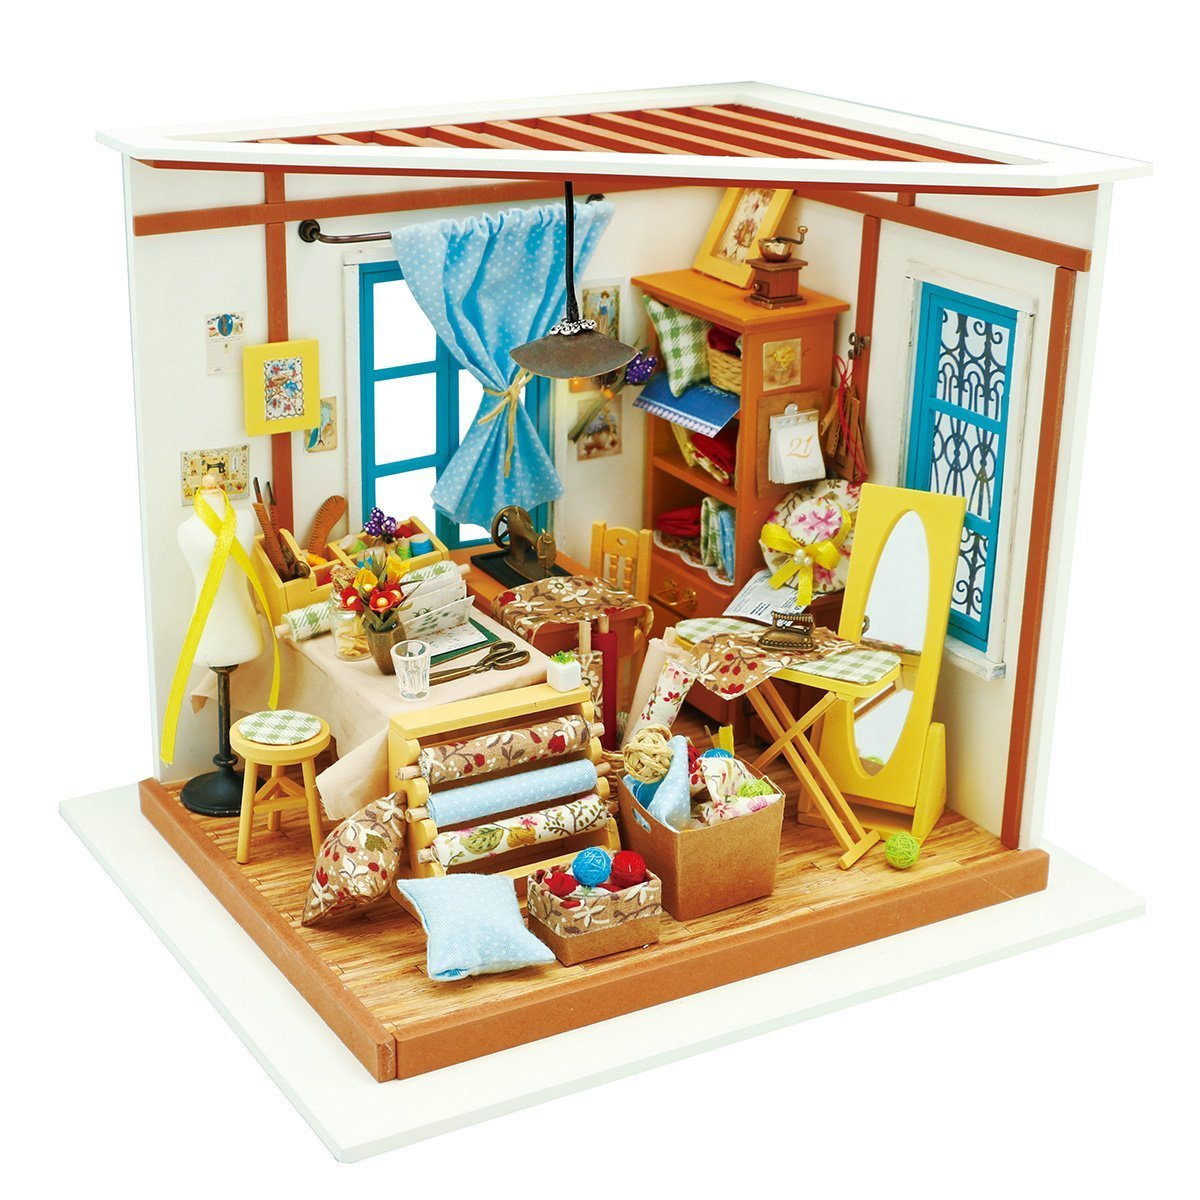 ROBOTIME DIY Wooden Miniature Dollhouse Furniture Accessories Sewing Room with LED light-Creative Toys for Boys and Girls DG101